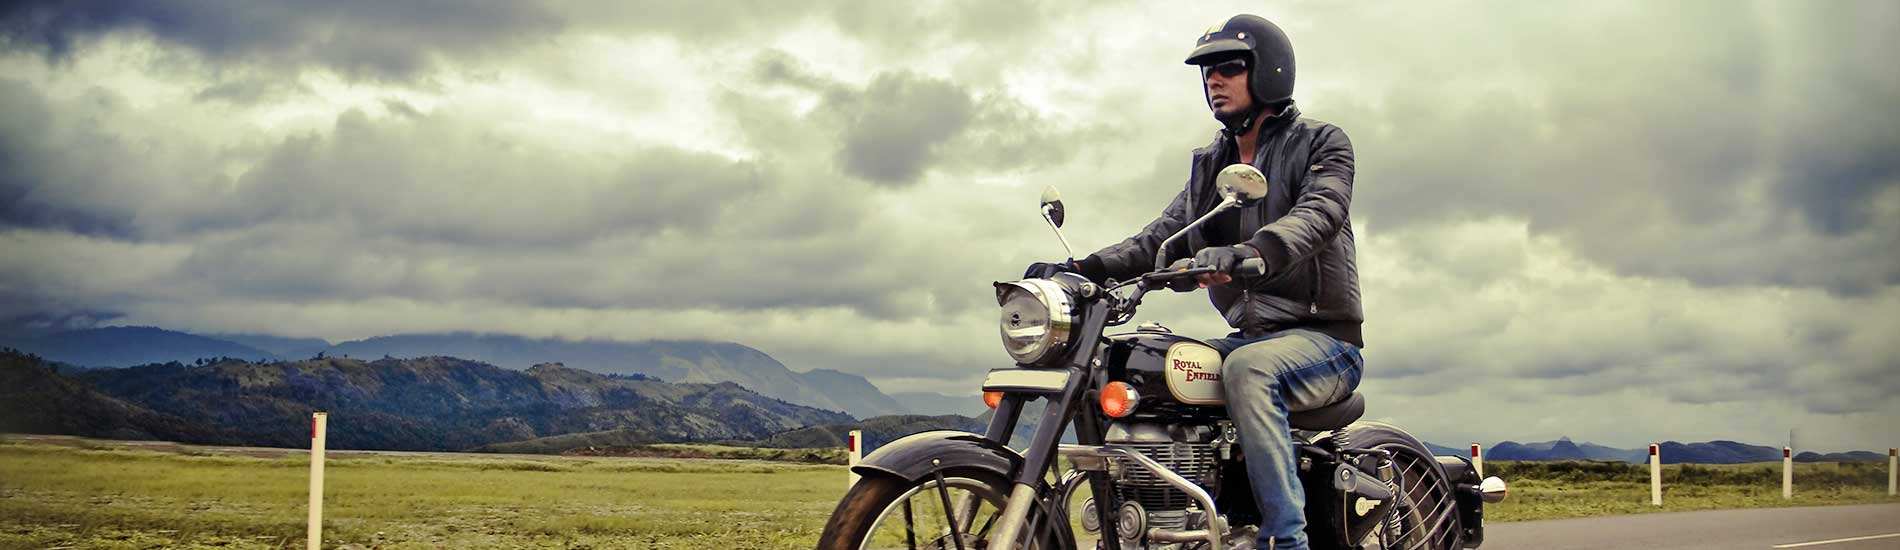 Royal Enfield motorbiking tour